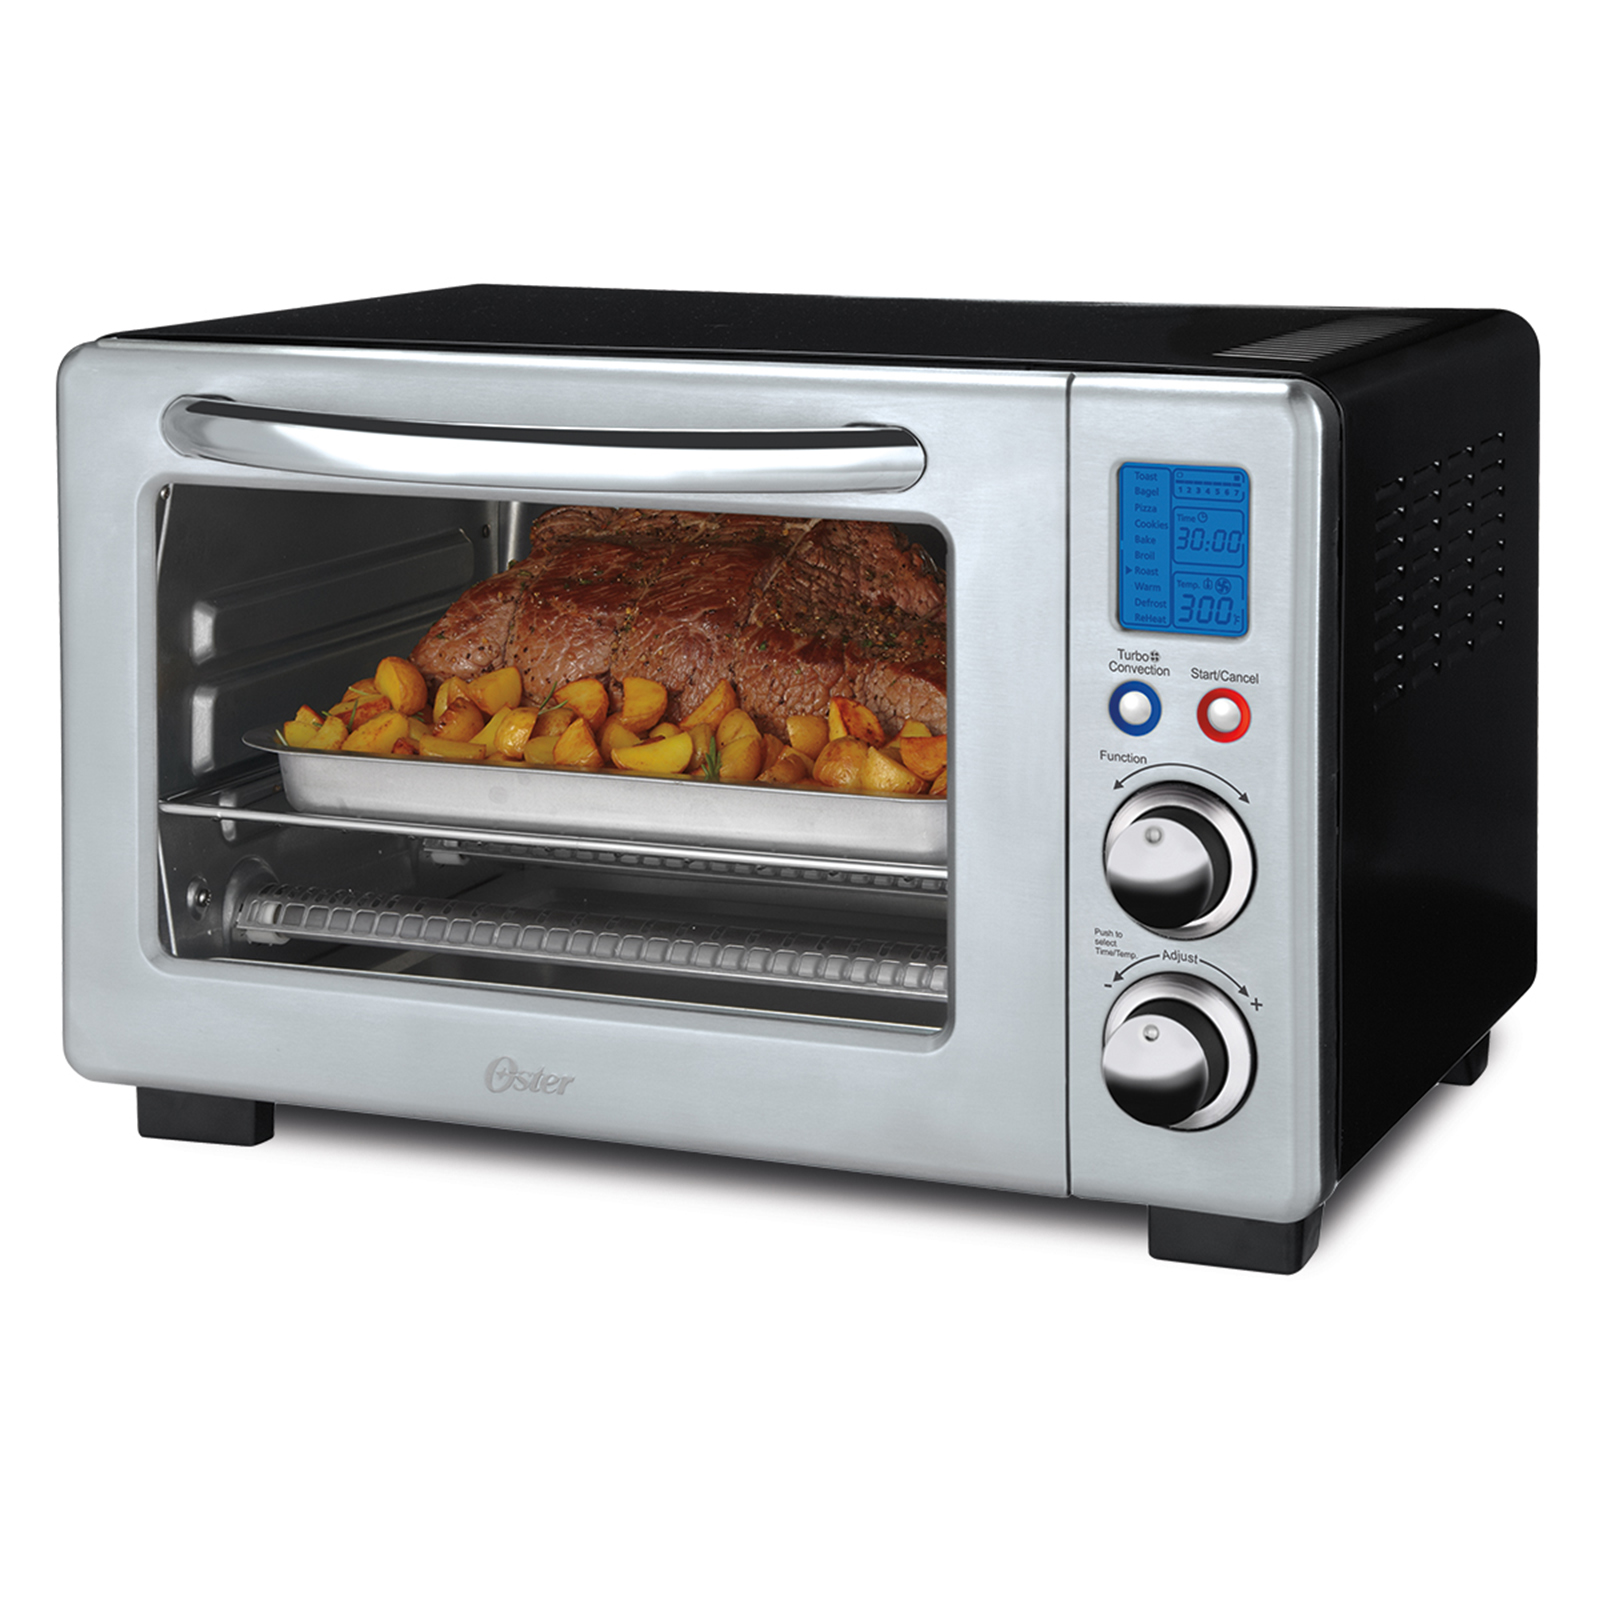 Oster Convection Countertop Oven Reviews Oster Tssttvdg01 Large Digital Countertop Oven